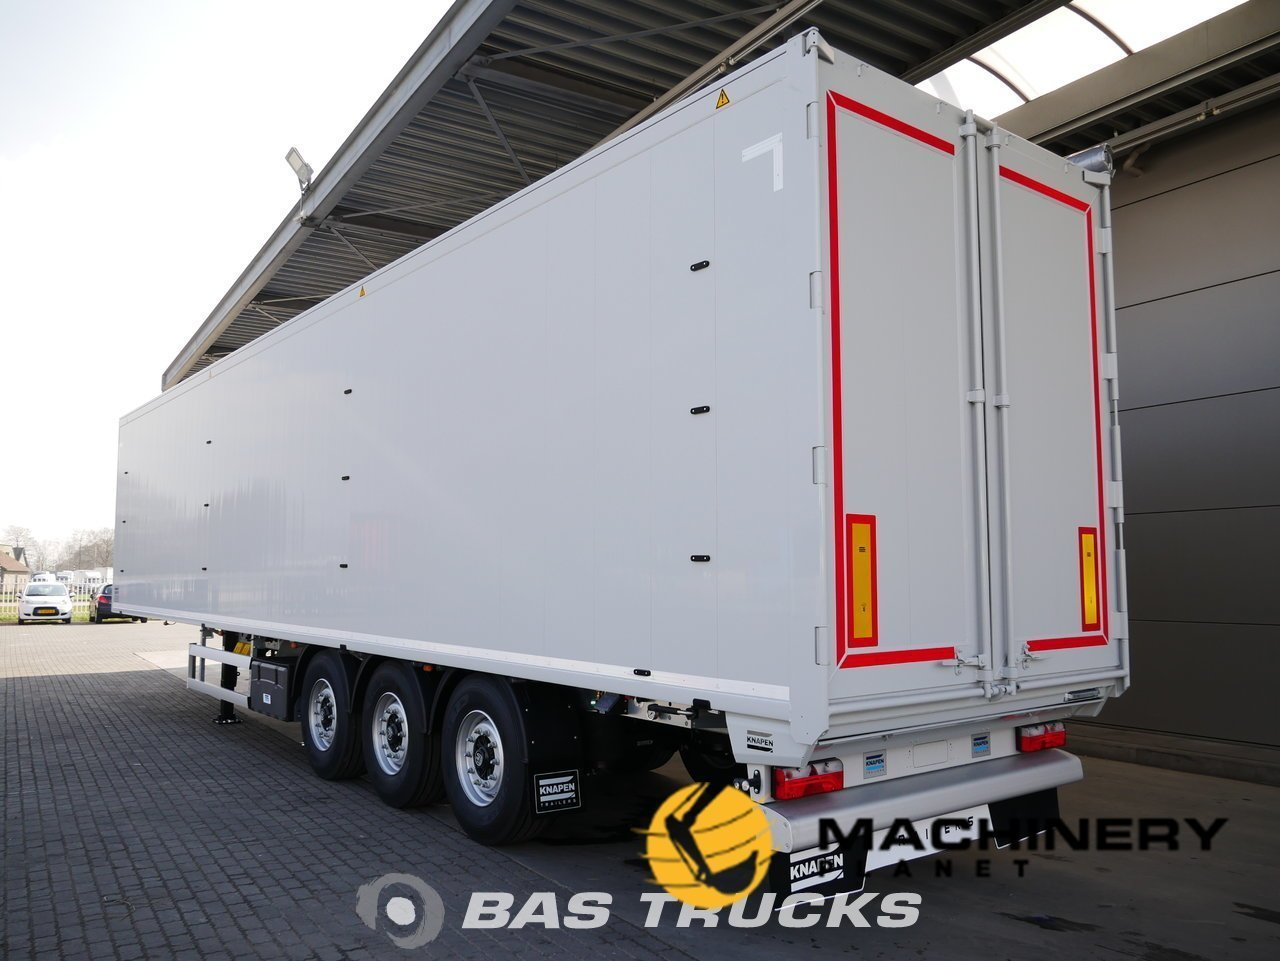 New-Semi-trailer-Knapen-K100-92m3-6mm-Floor-New-Unused-Axels_135743_1-1554203006532_5ca3417e81daf-1.jpg